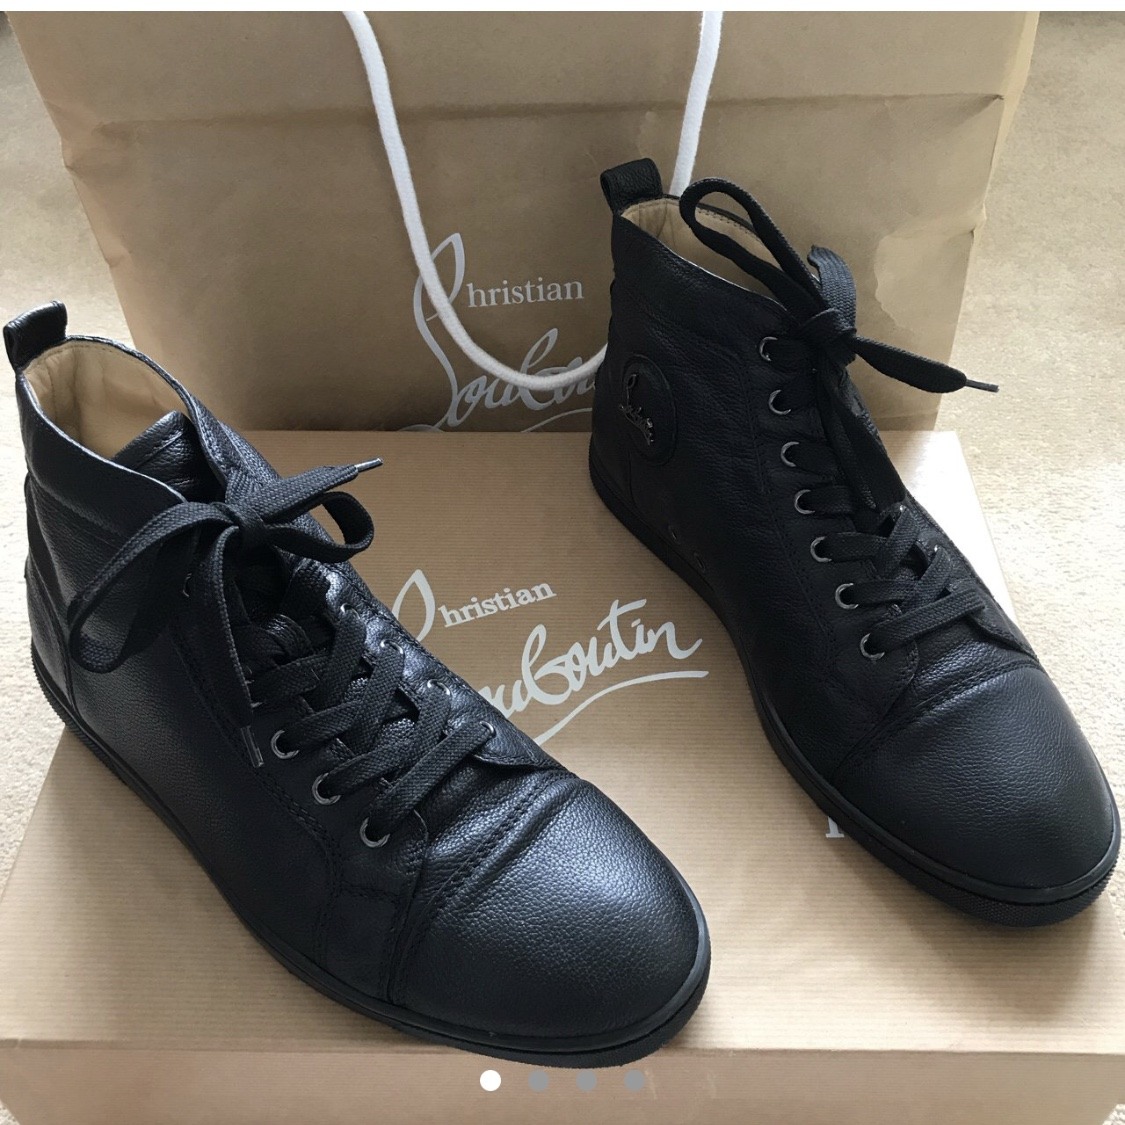 info for fafc0 5f1e5 Classic black leather louboutins. Men's. Worn... - Depop